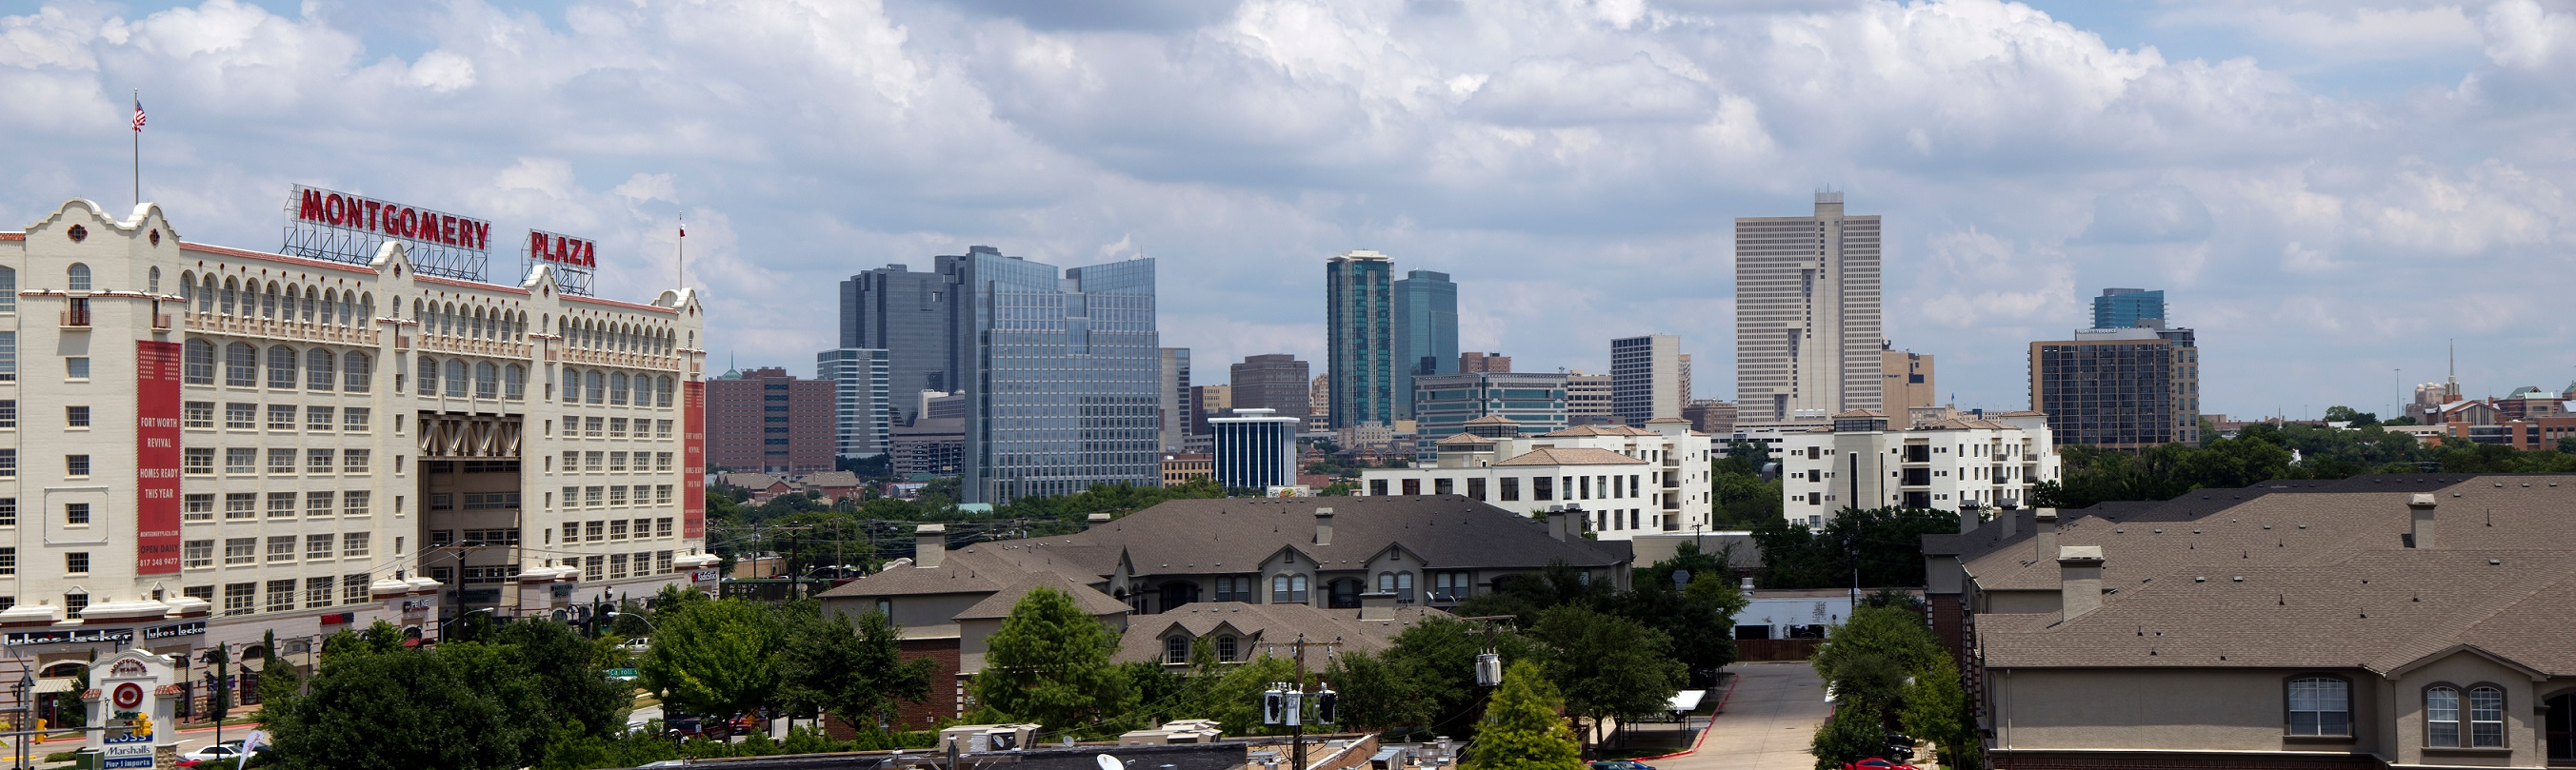 Coppell TX: Cozy Suburb With Great Location